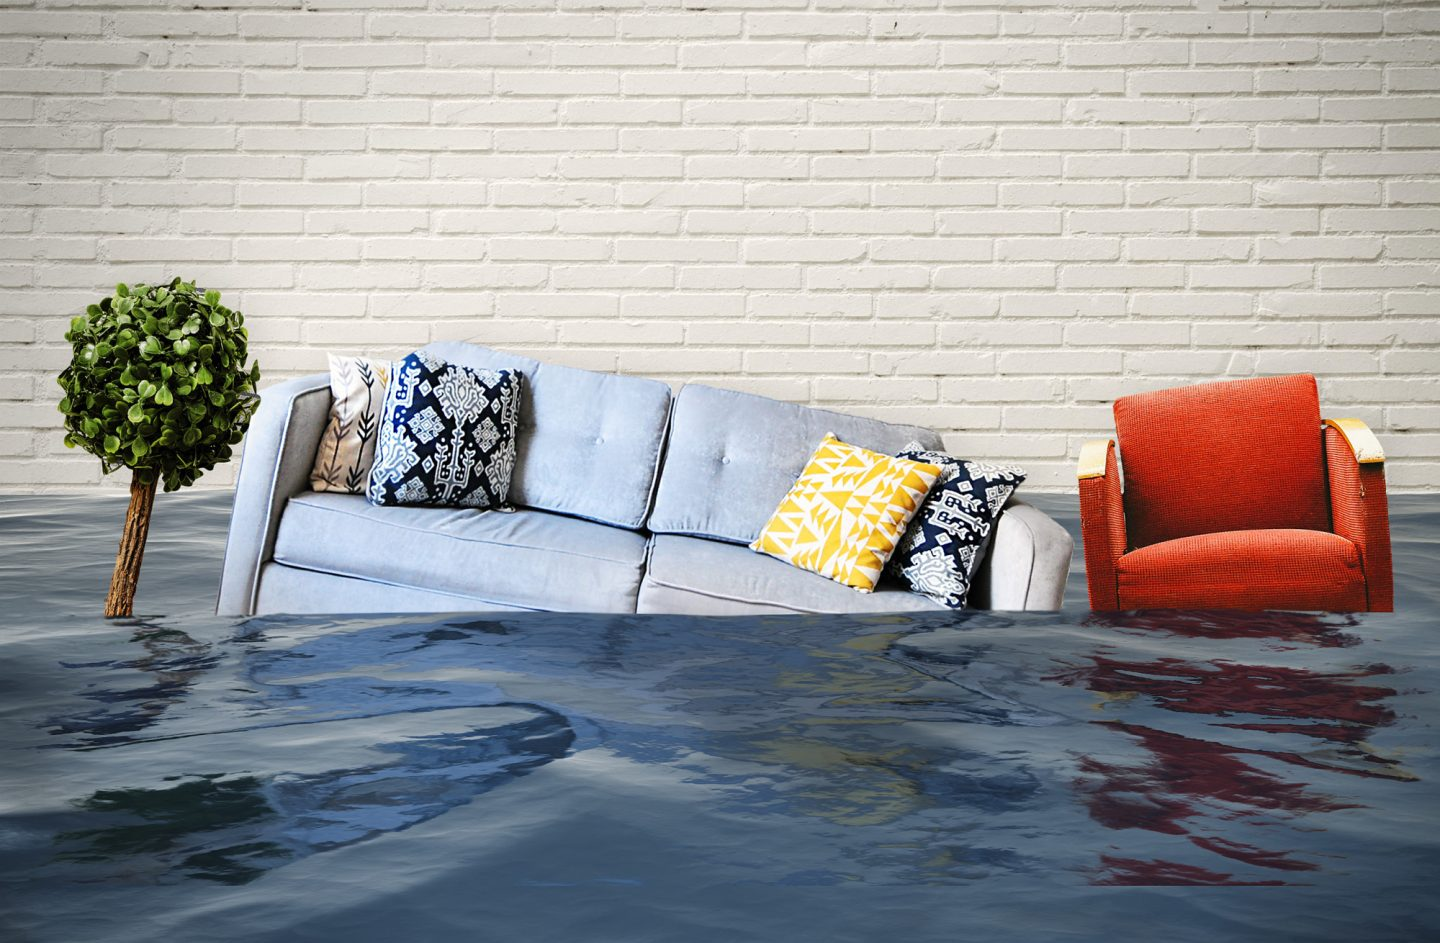 5 Things You Can Do to Repair Water-Damaged Furniture